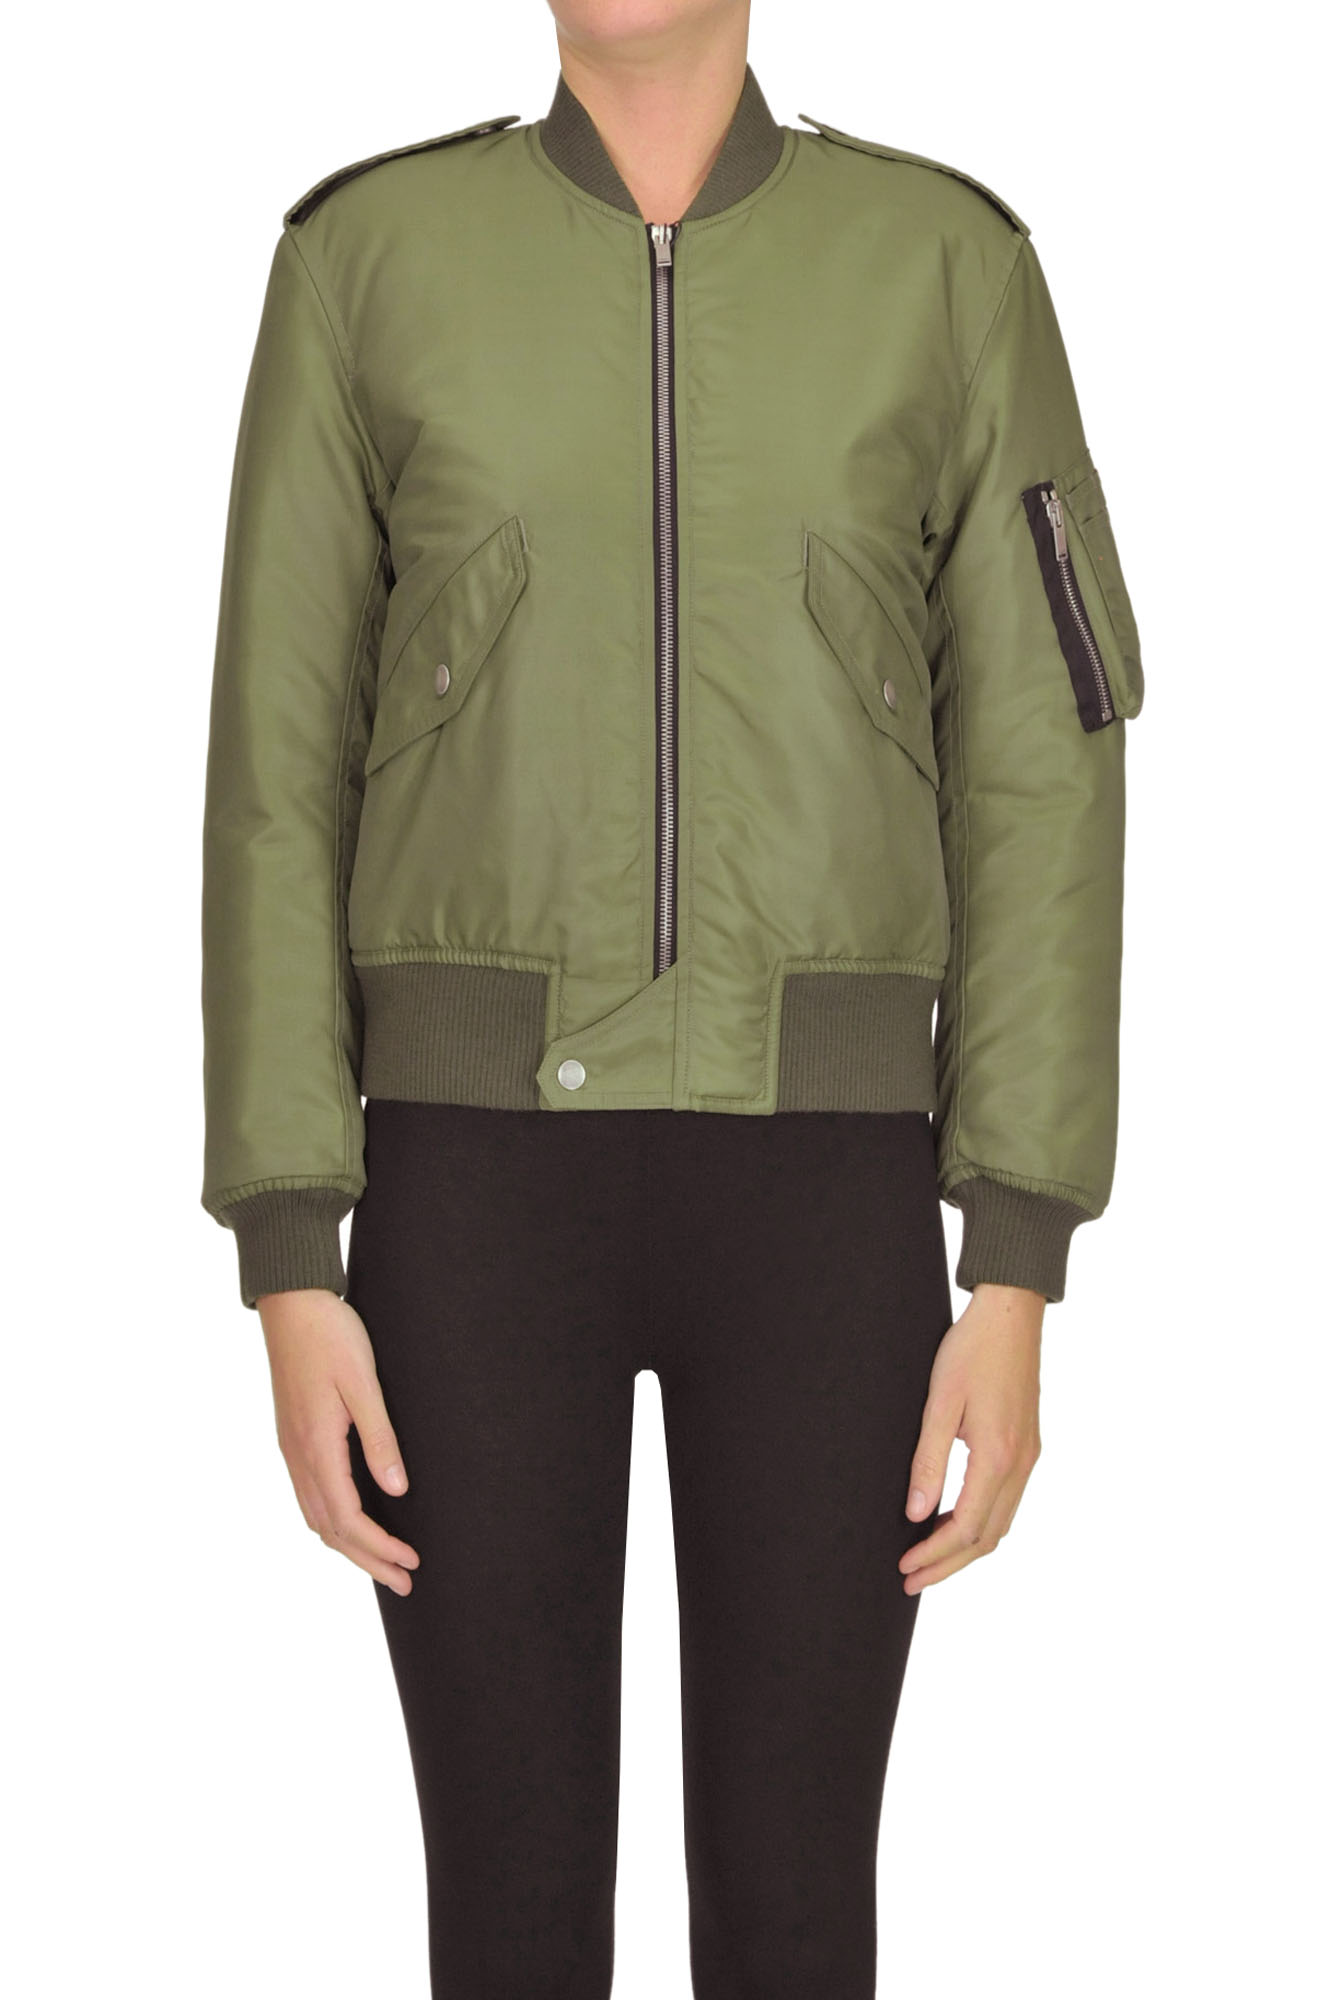 Saint Laurent Techno Fabric Bomber Jacket In Olive Green